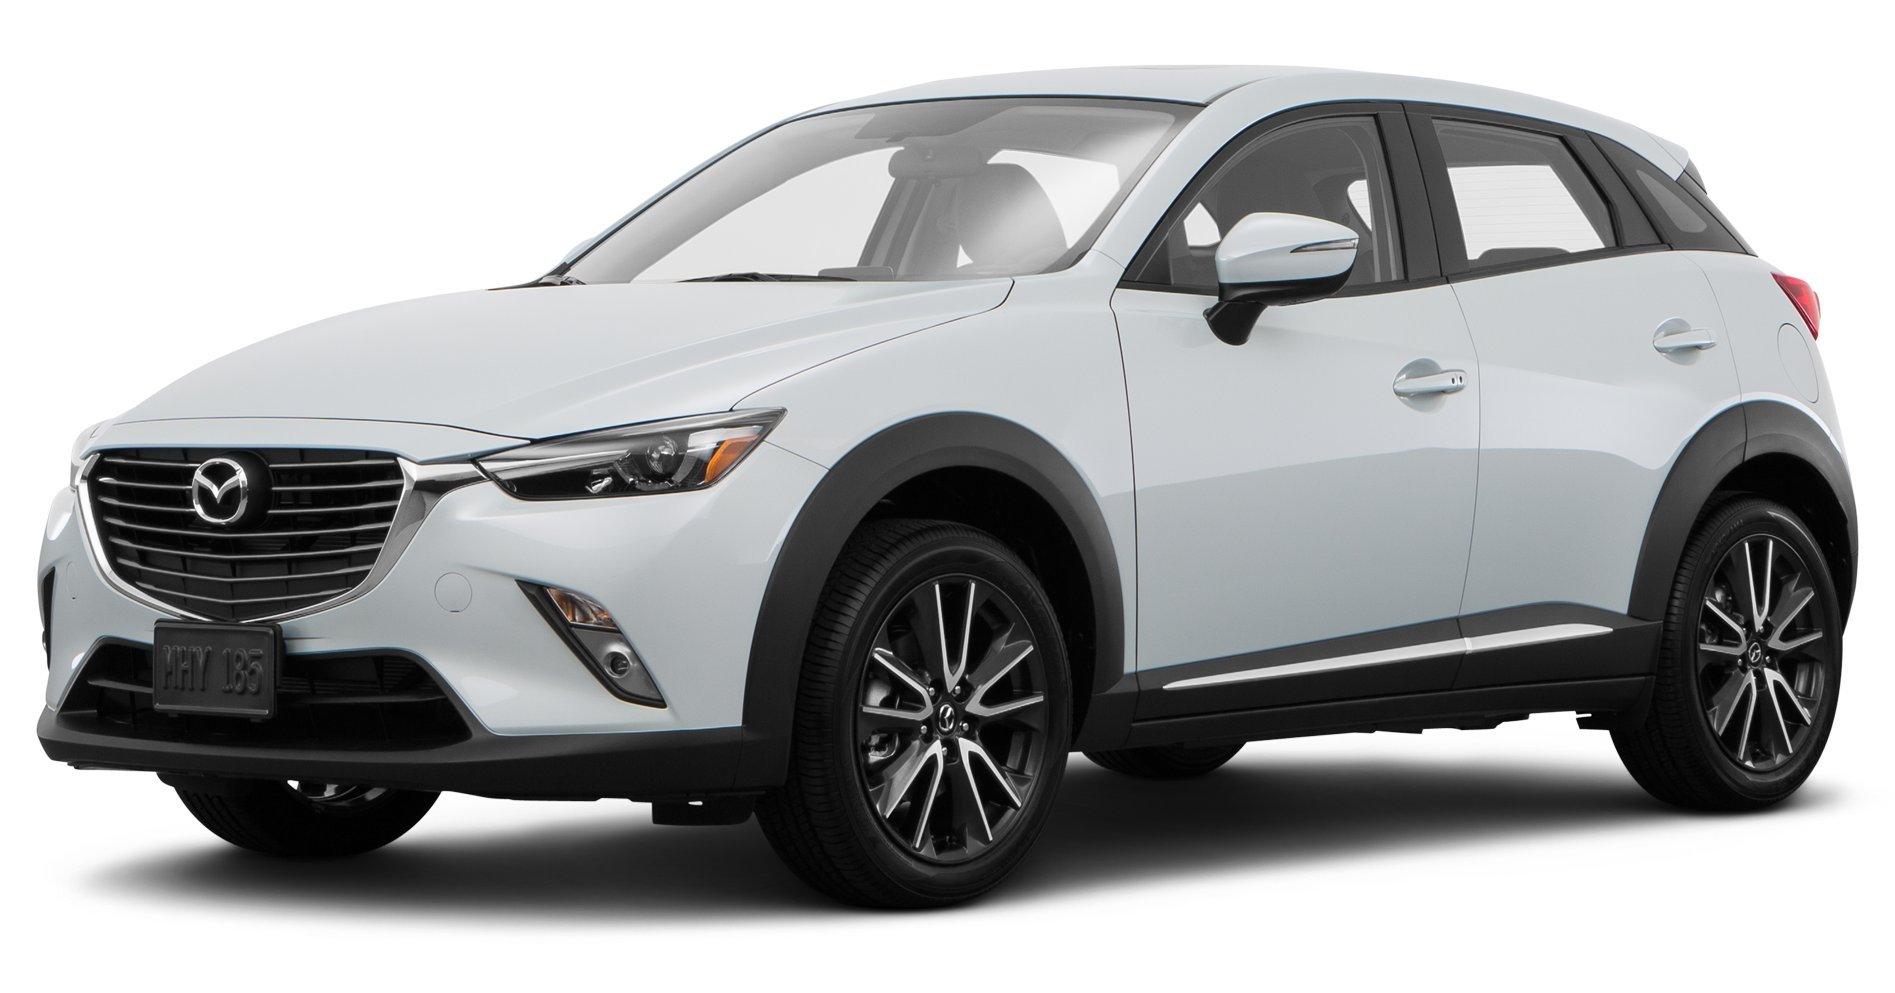 2016 mazda cx 3 reviews images and specs. Black Bedroom Furniture Sets. Home Design Ideas